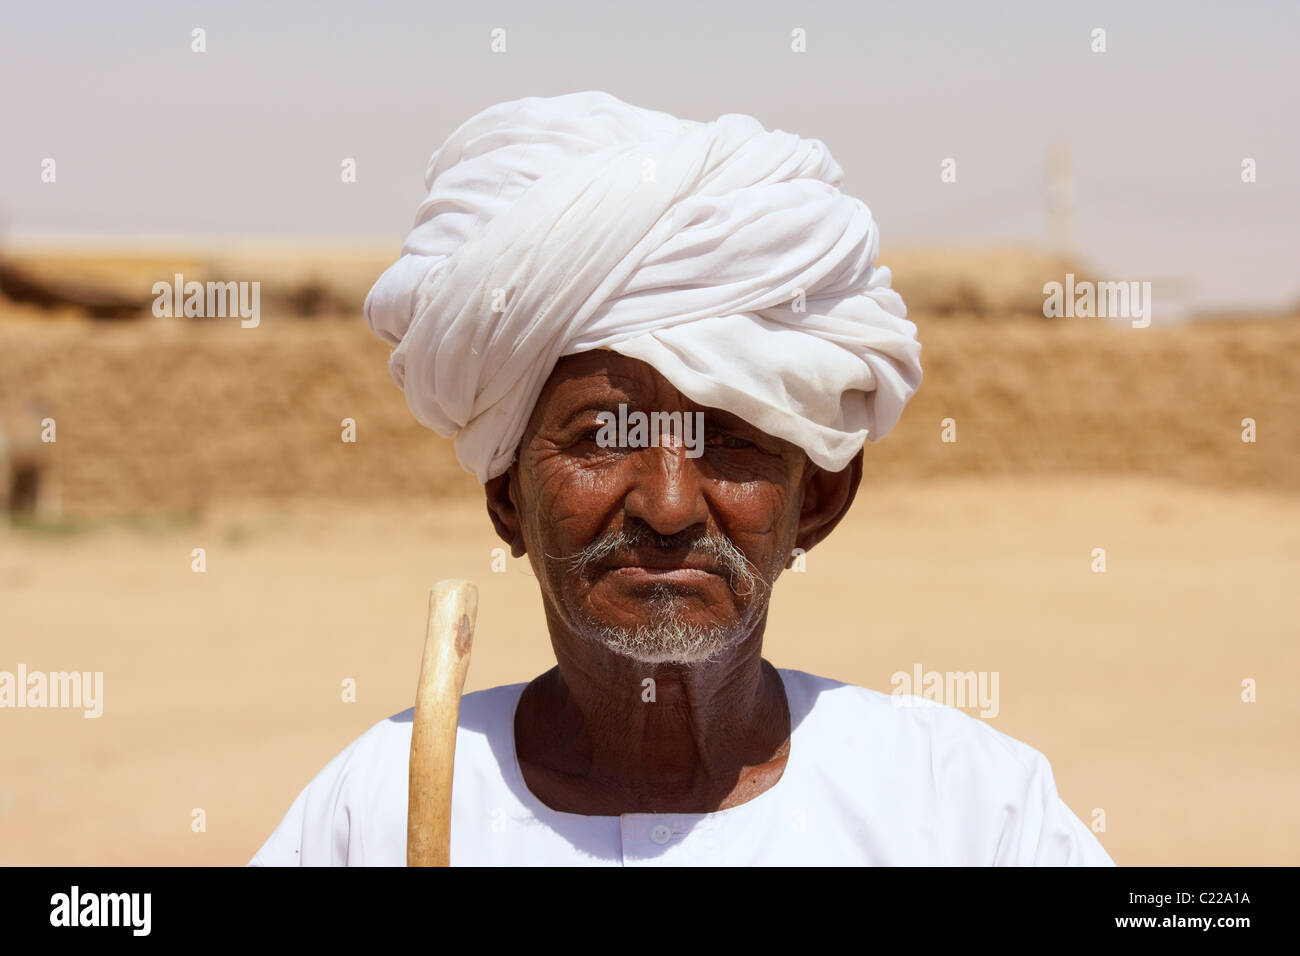 Portrait of an old Sudanese man wearing turban Stock Photo